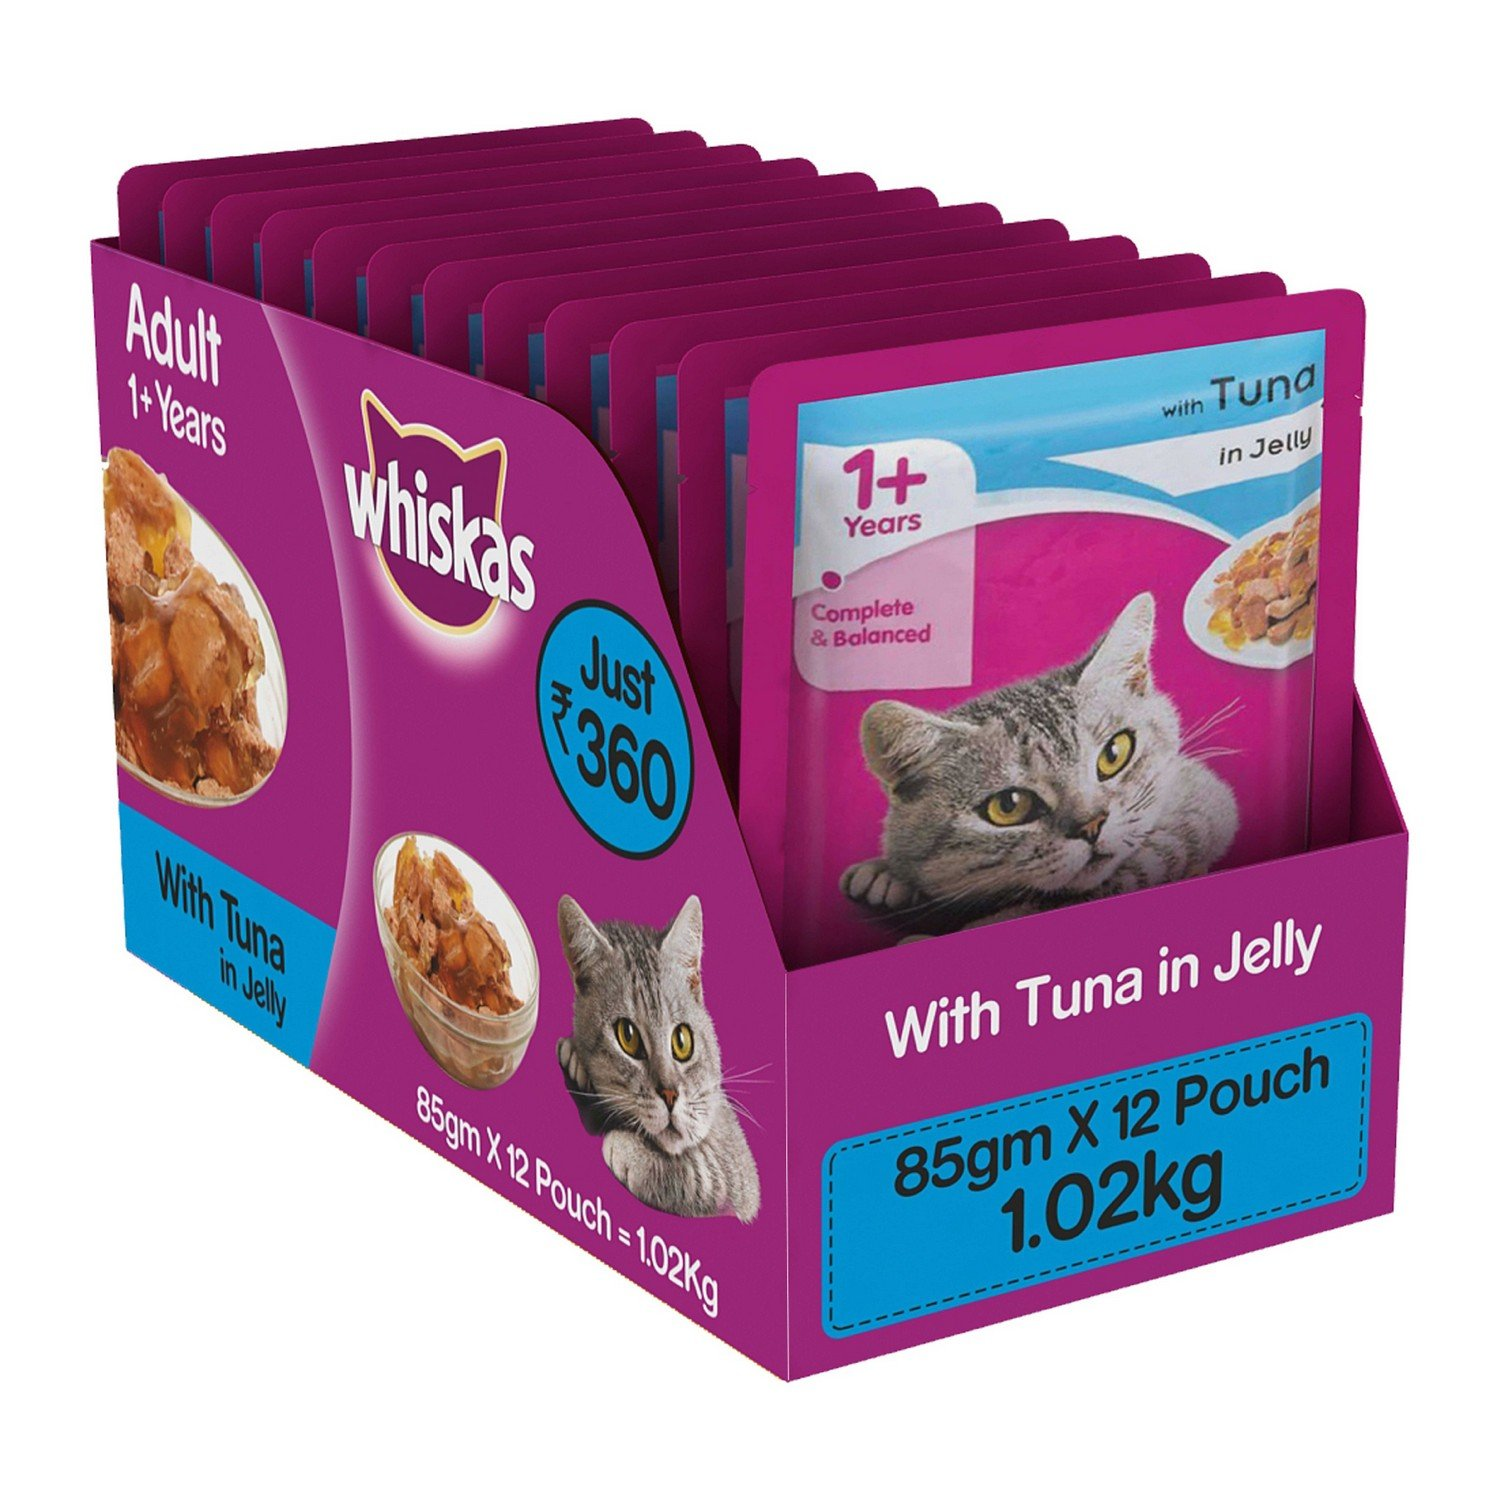 cat food in india We offer a perfect platform to buy online cat food from among different categories such as wet food, dry food, prescription diets, kitten food, treats and chews and milk replacement and weaning we also offer a variety of feeding accessories for cats like a feeder, bowls, kitten feeder, food storage, etc that are available at discounted prices.